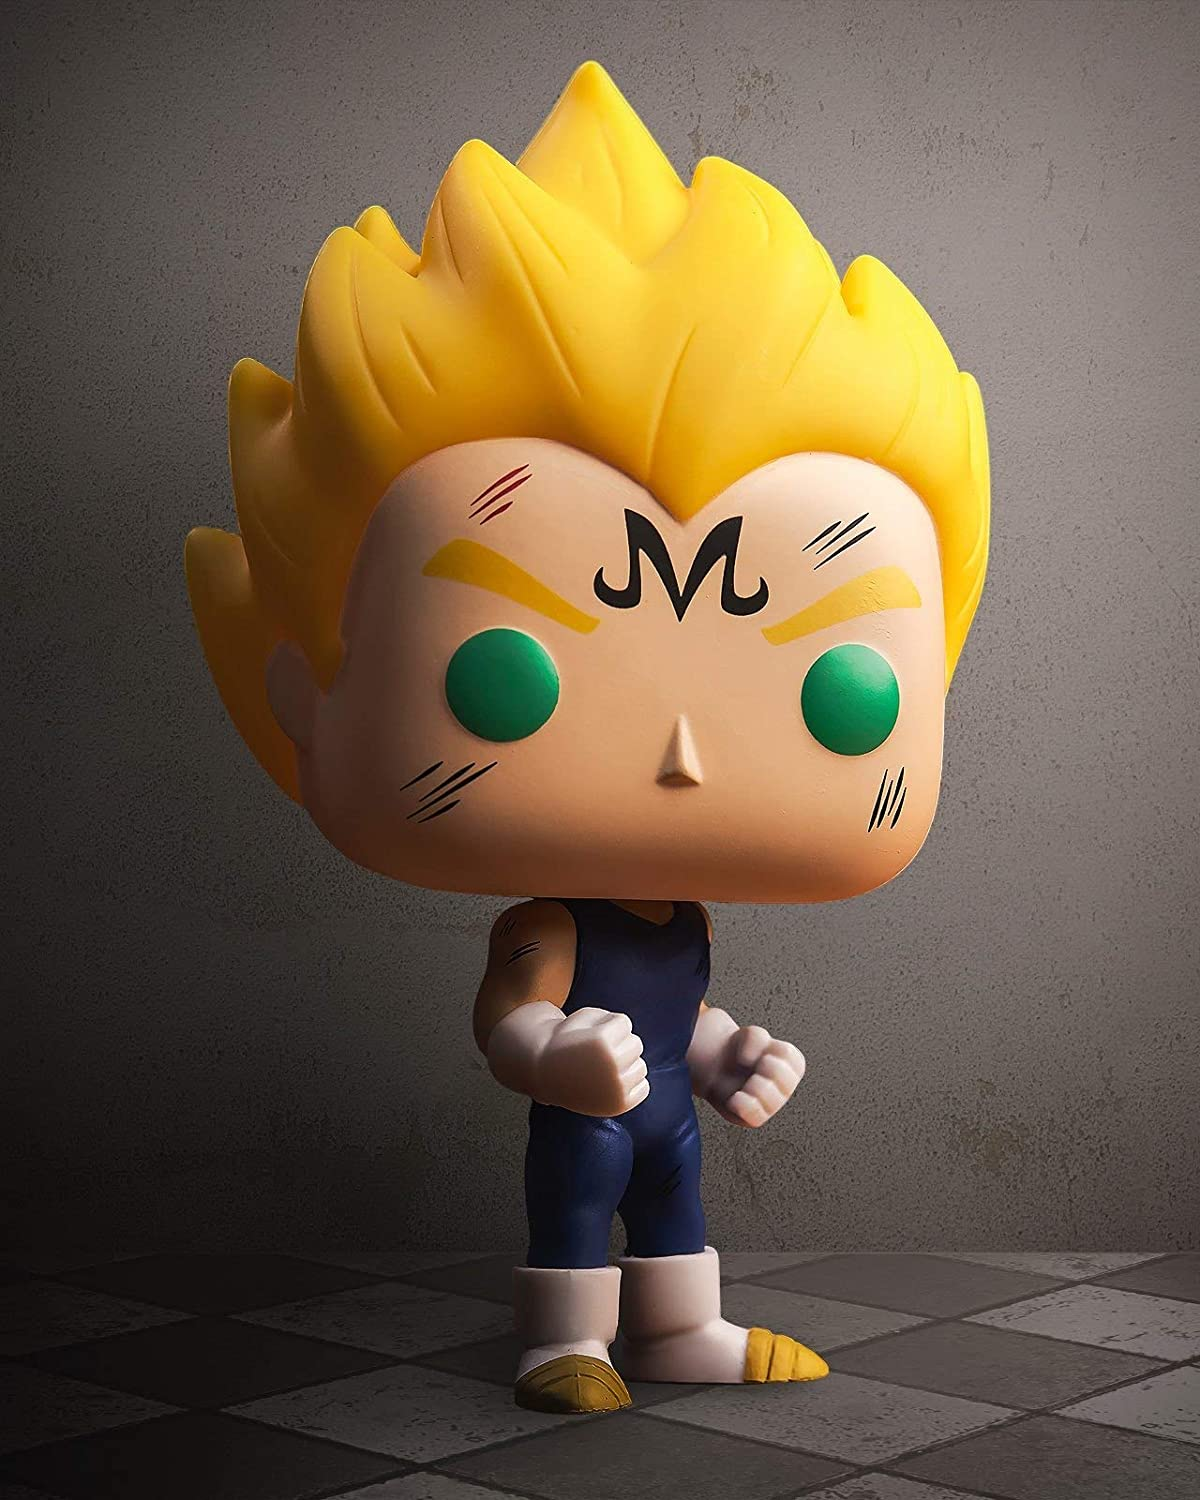 Funko Pop Dragon Ball Z Majin Vegeta Exclusive Over 9000